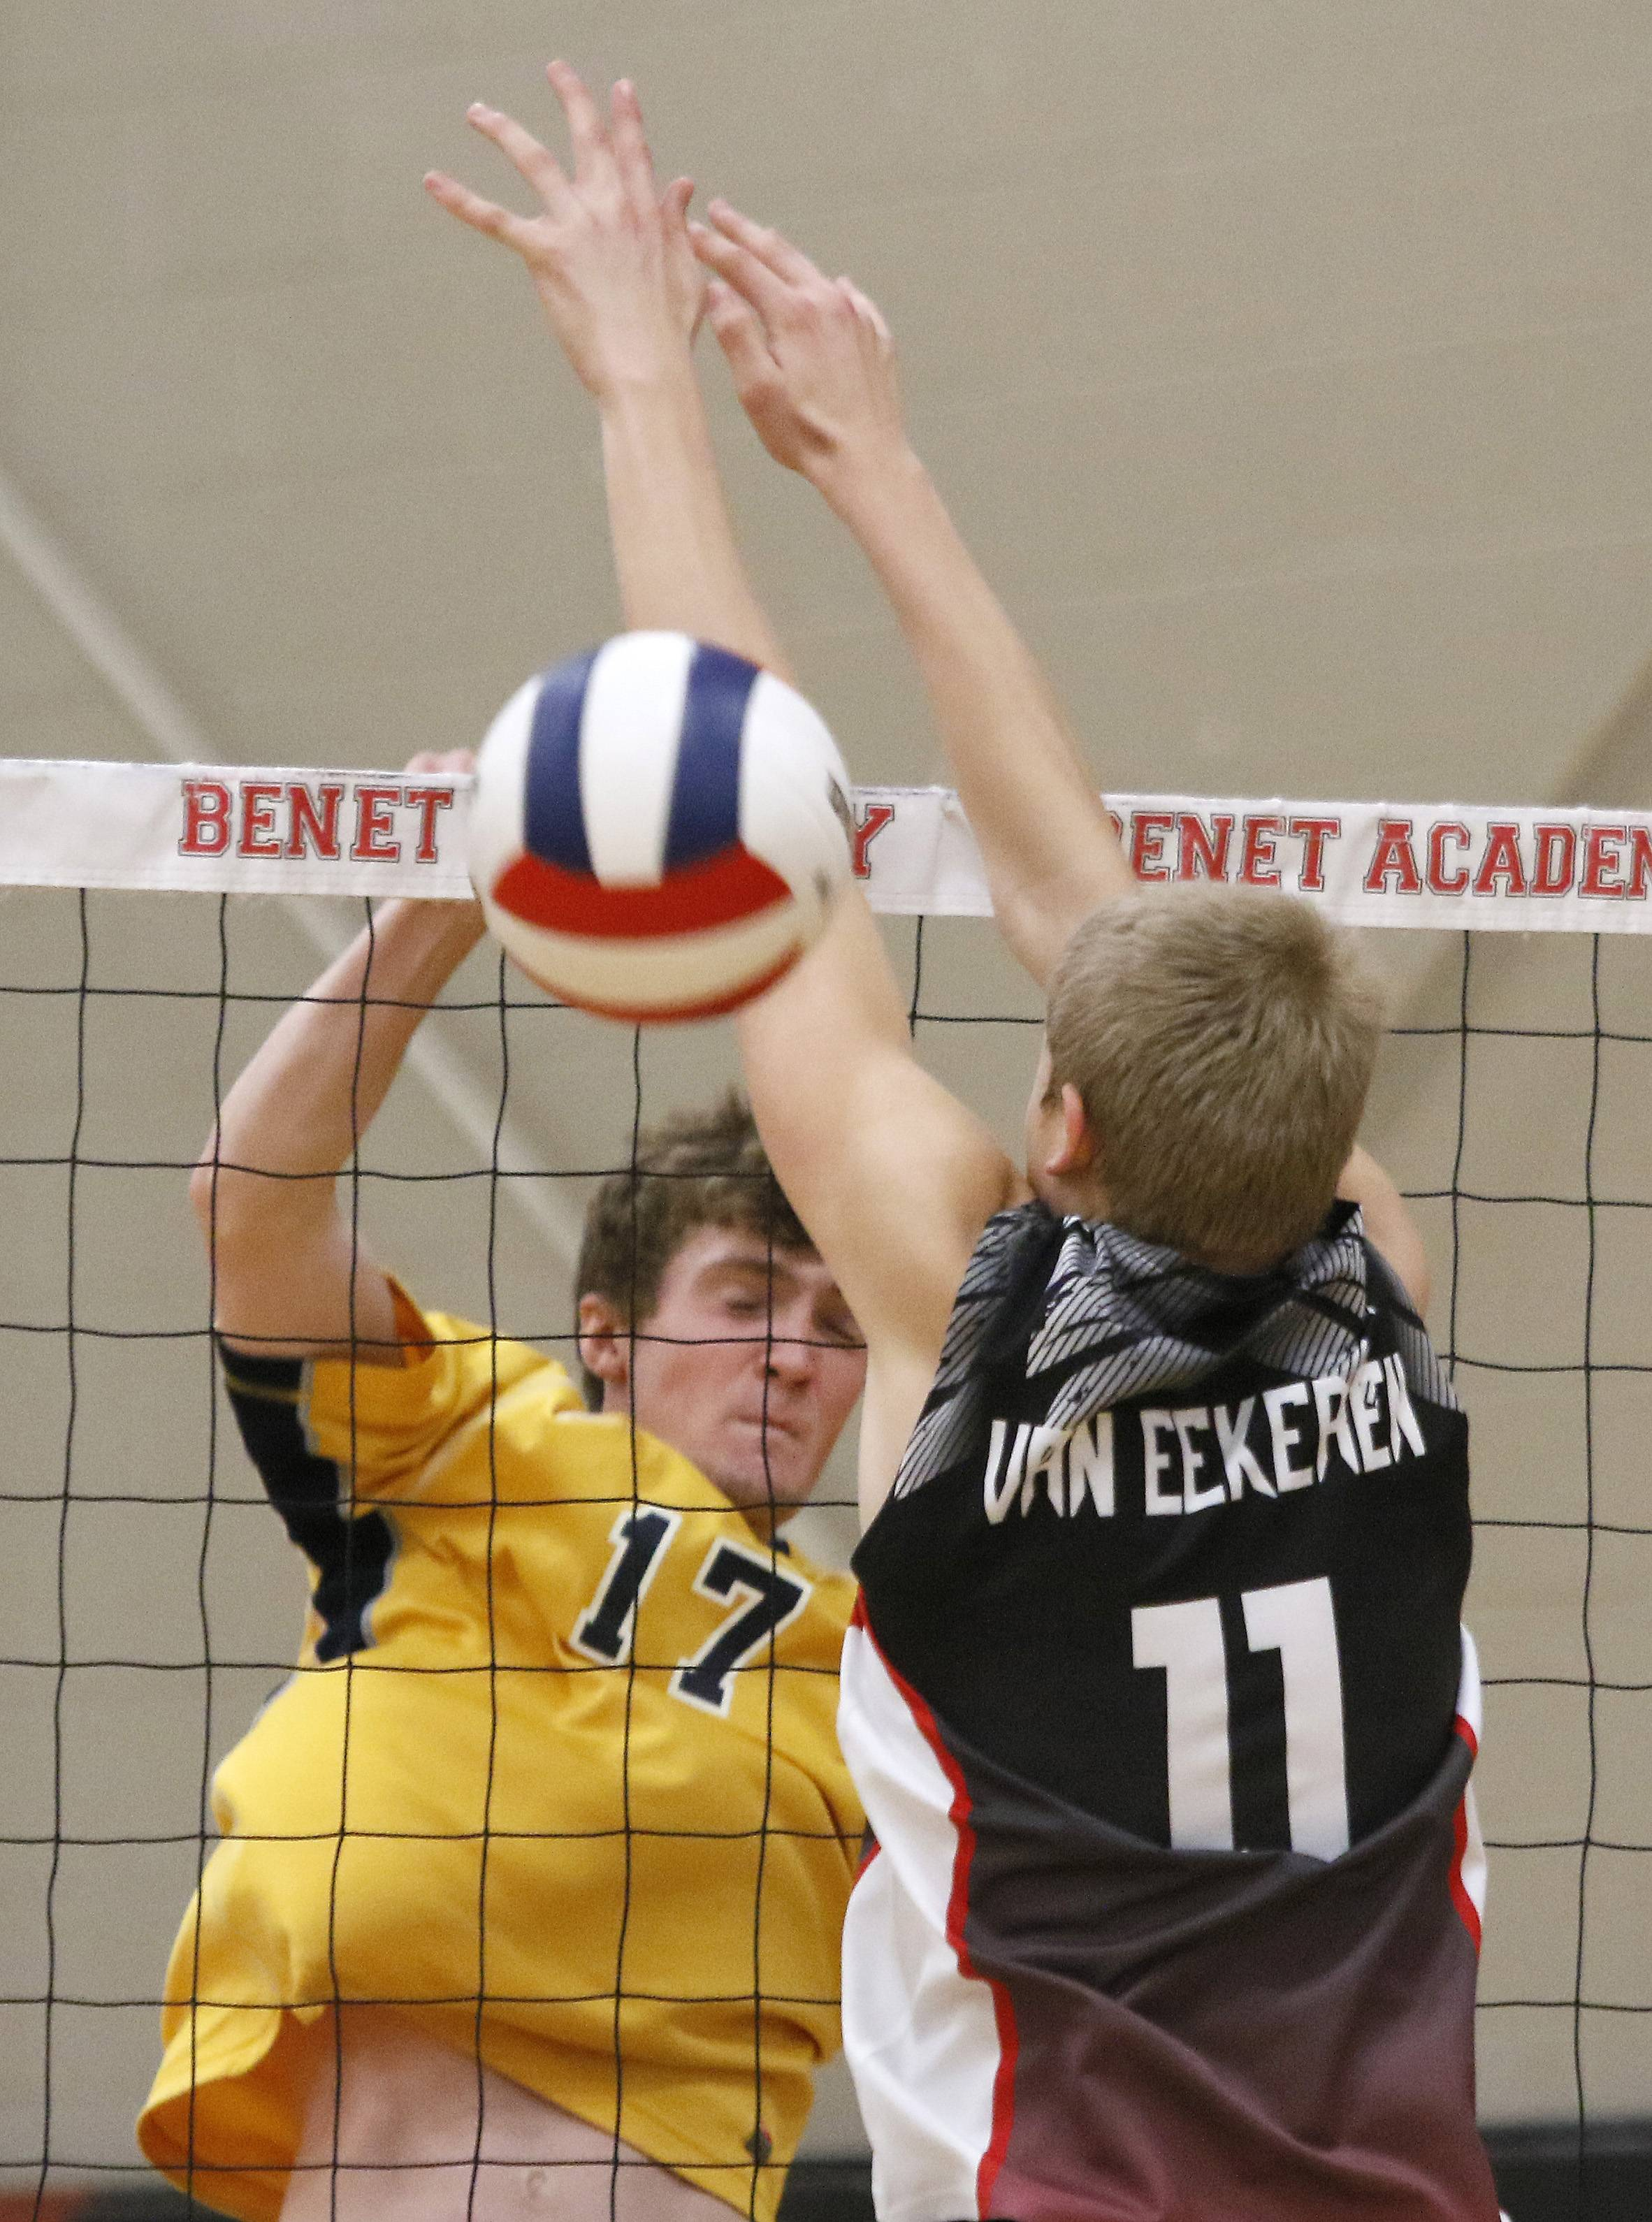 Neuqua Valley's Karl Deichmann (17) battles at the net against Benet Academy's Jackson Van Eekeren during the 11th annual Benet Academy Boys' Volleyball Invitational.